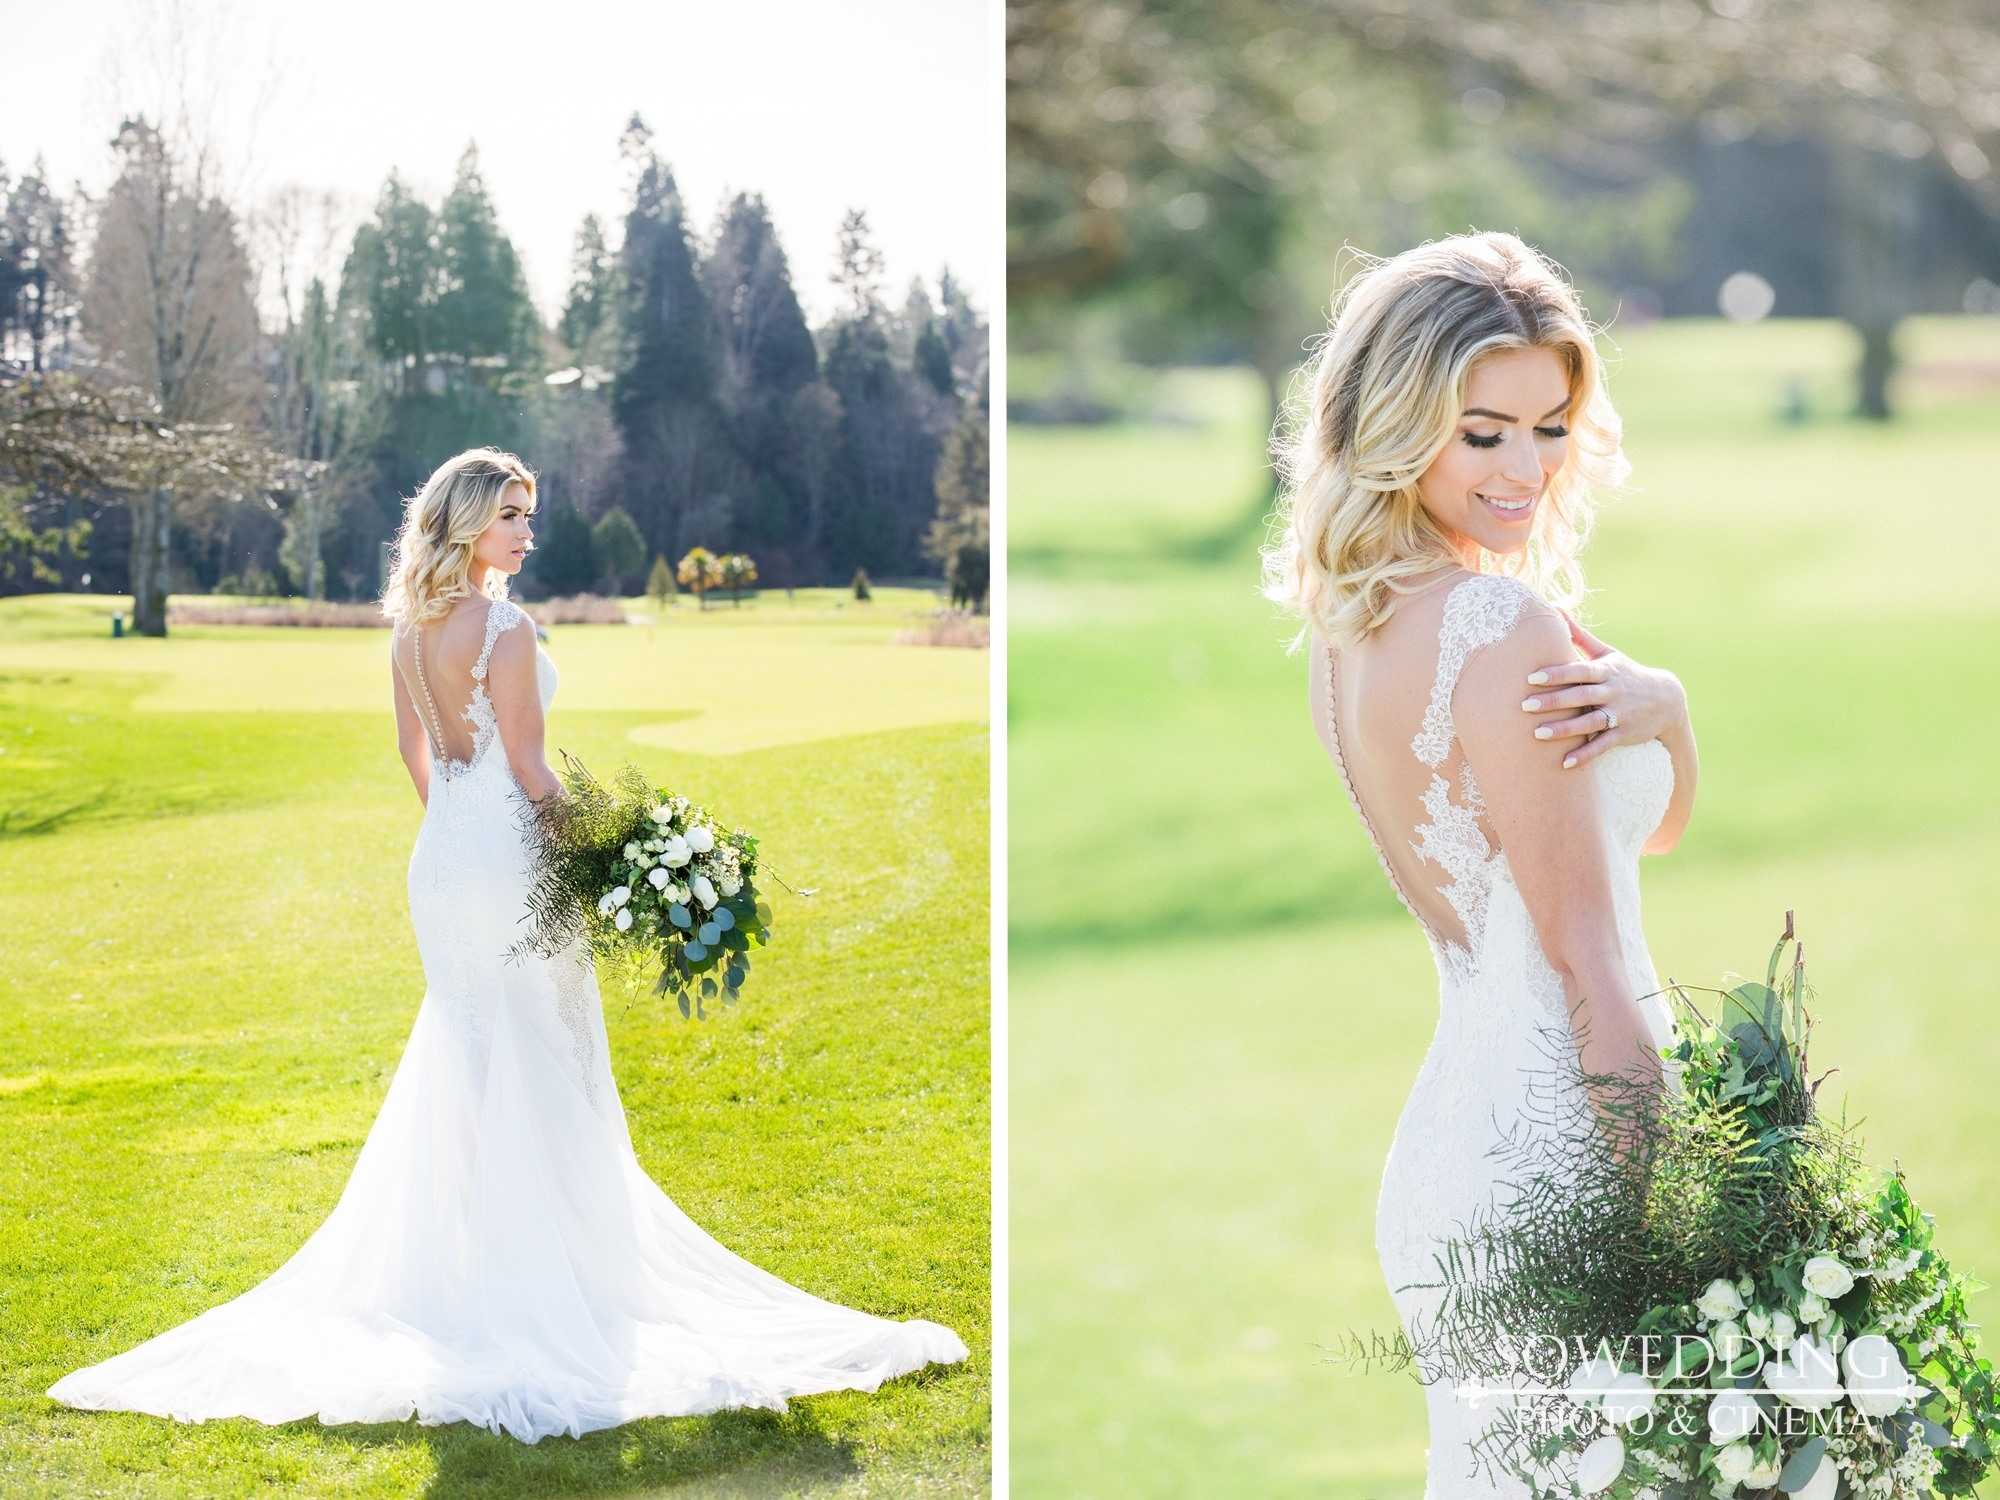 2016FebWedLuxe-Highlight-SoWedding(67)